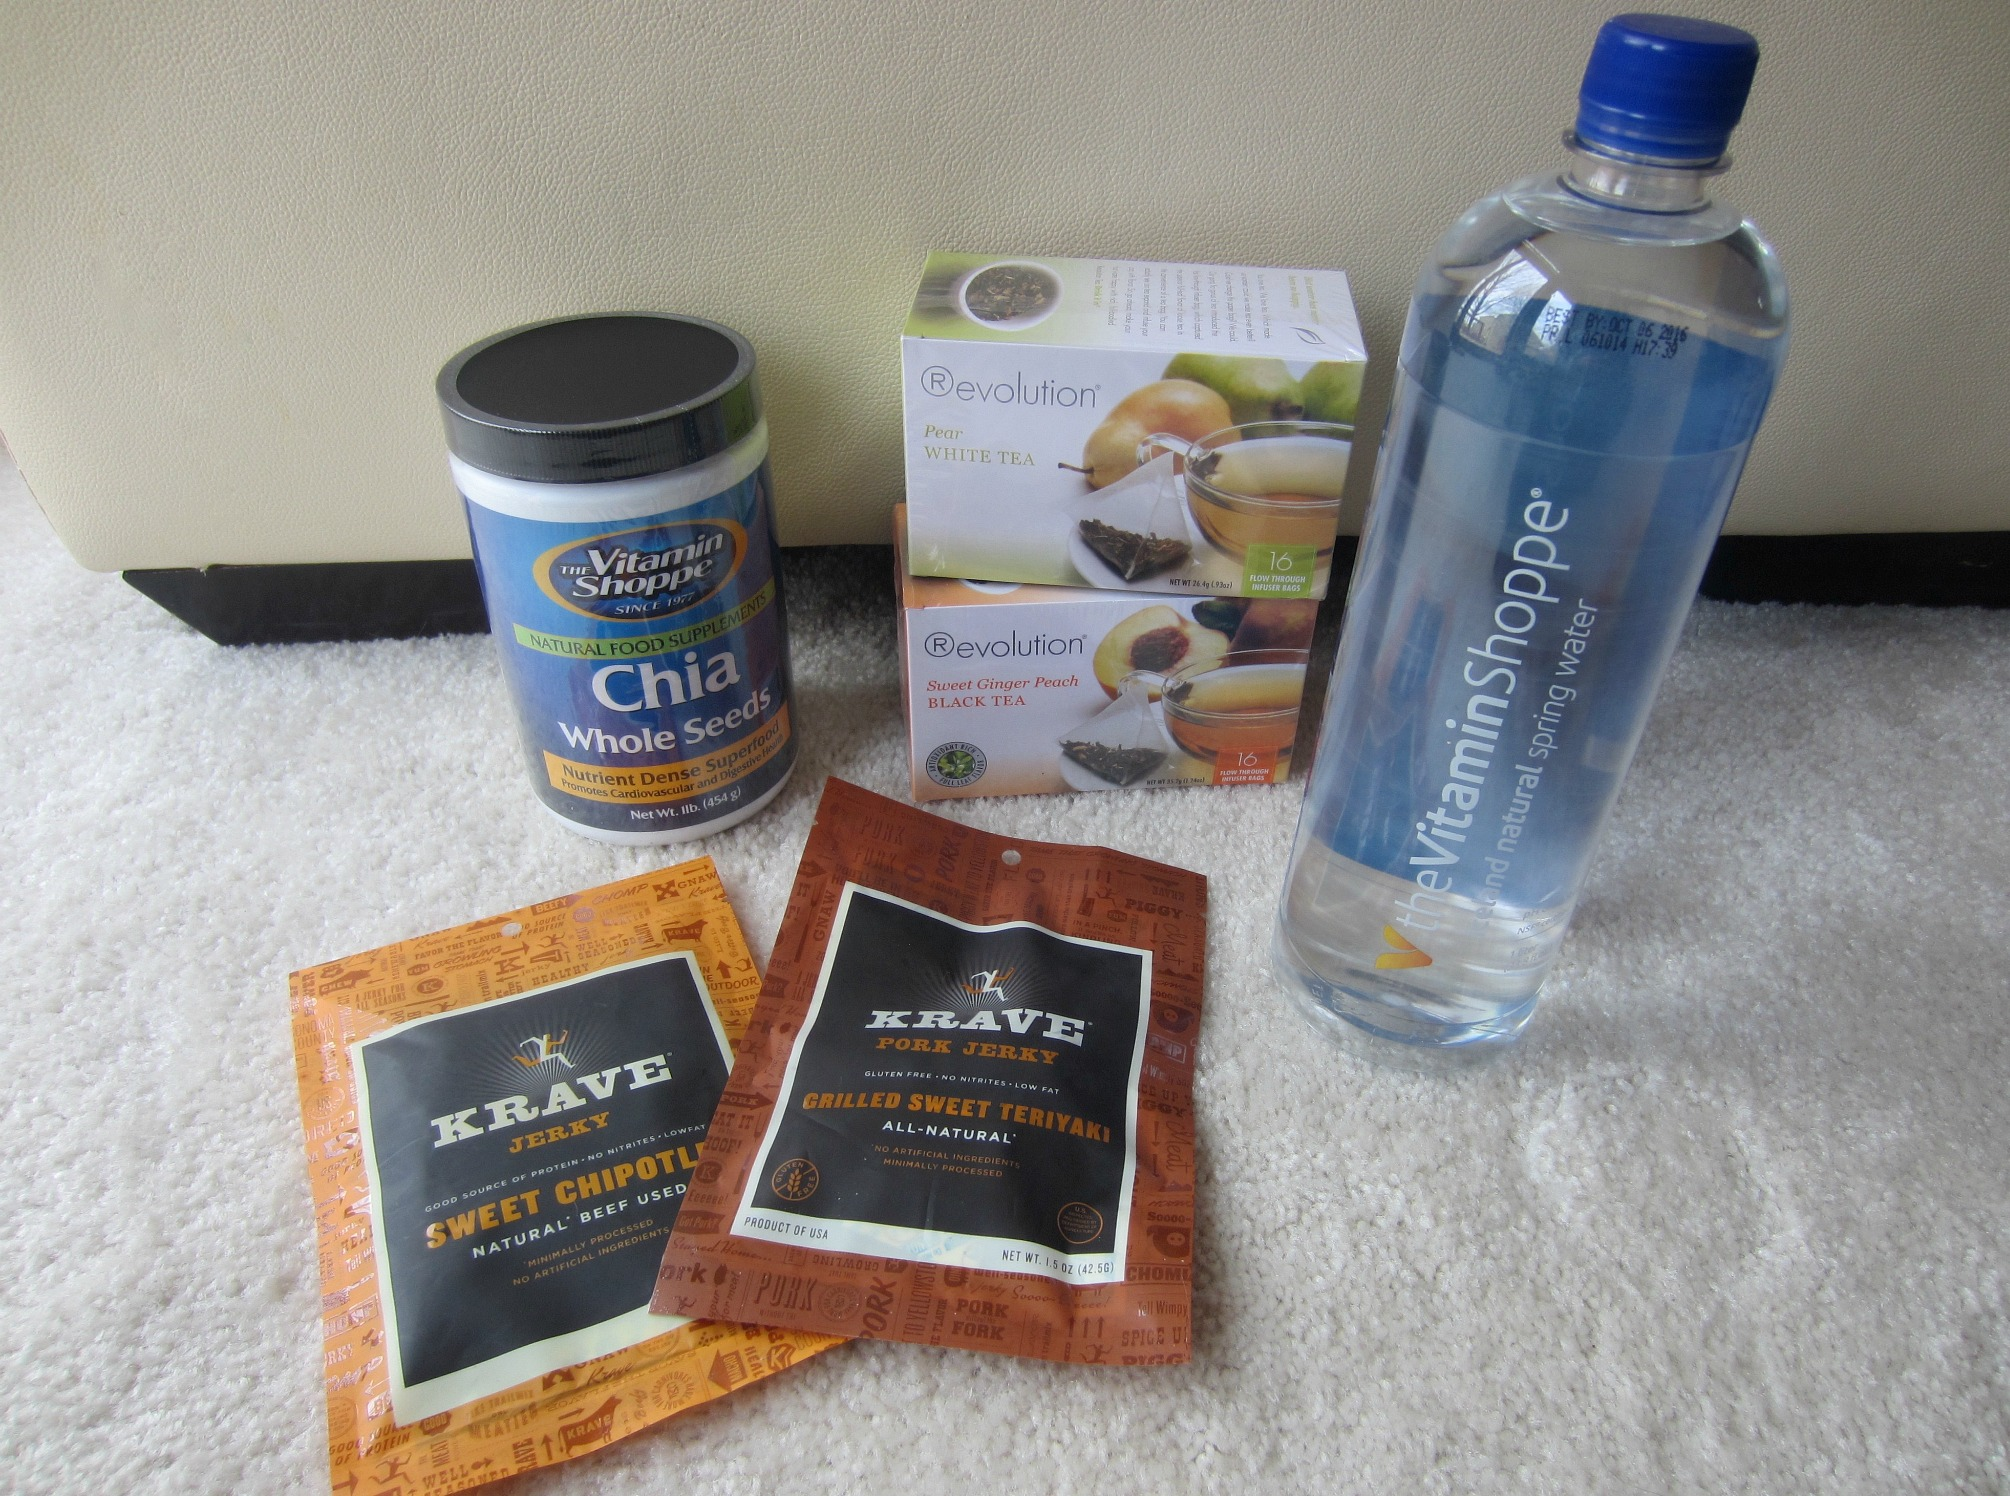 vitamin shoppe snacks krave jerky chia seeds tea and iceland water